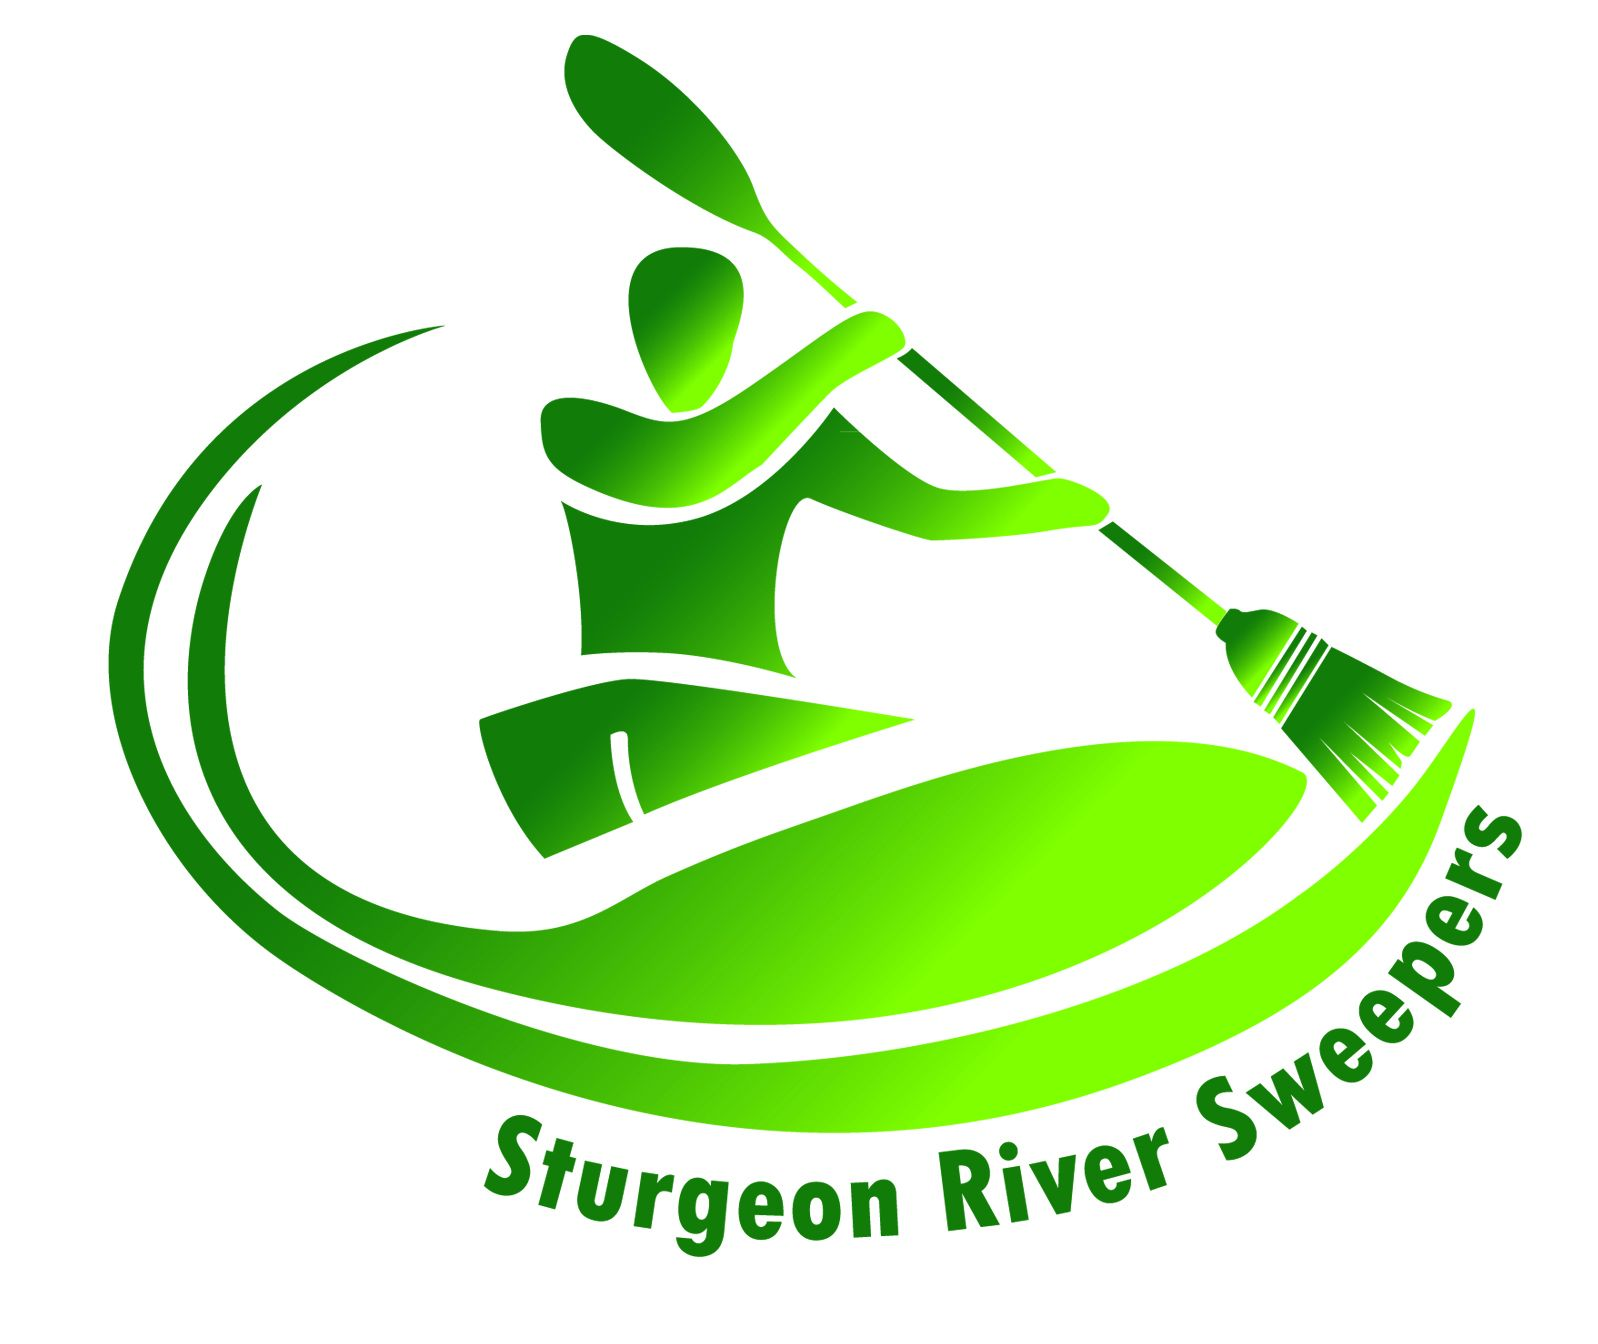 The folks up here on the Sturgeon want to thank the BRCS for helping us to get started keeping the Strgeon clean.  You guys rock!